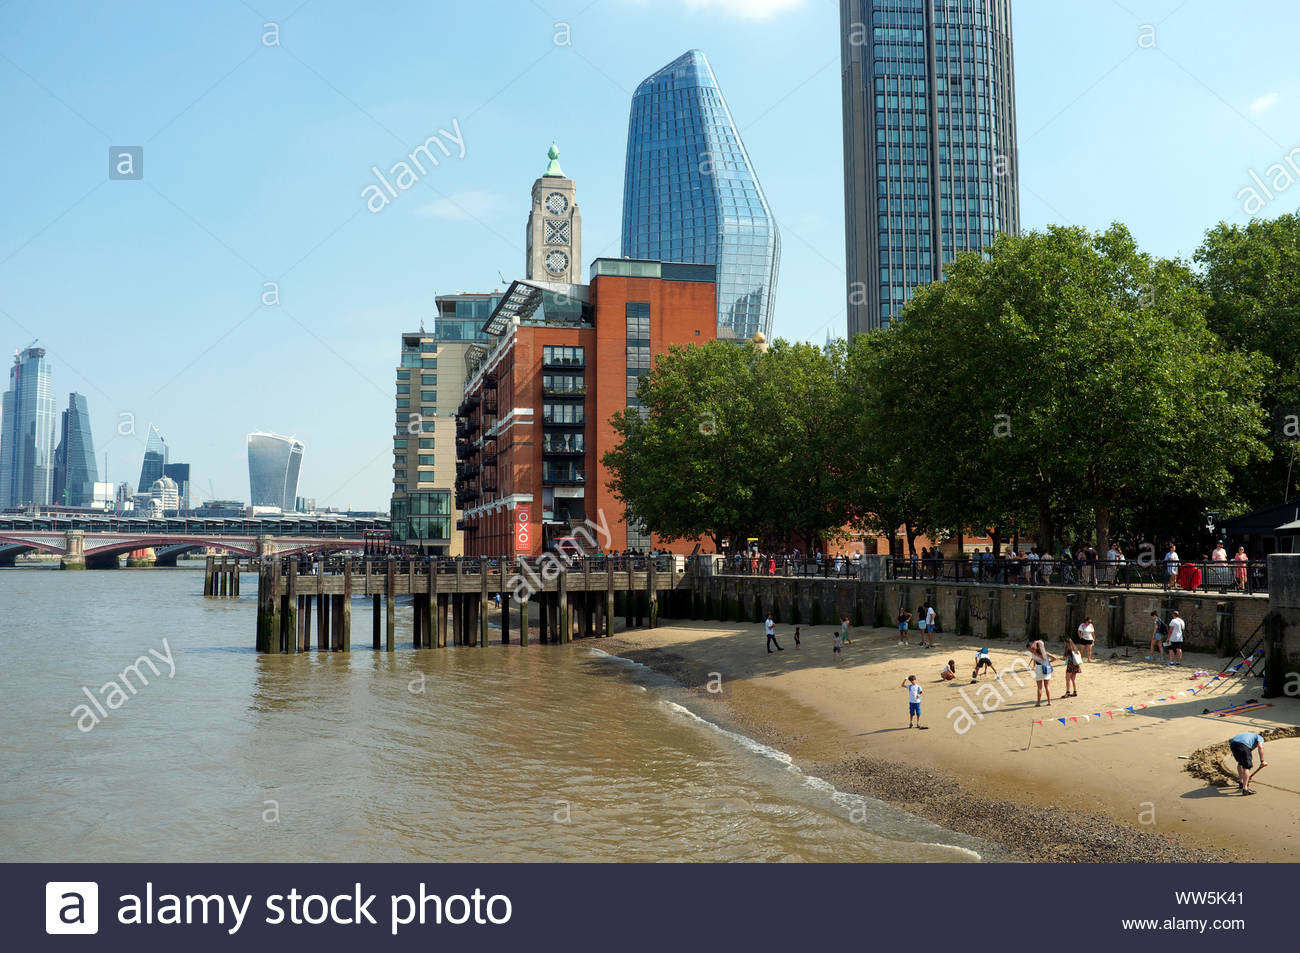 People enjoy the summer on a beach exposed by the River Thames in central London, UK. Stock Photo